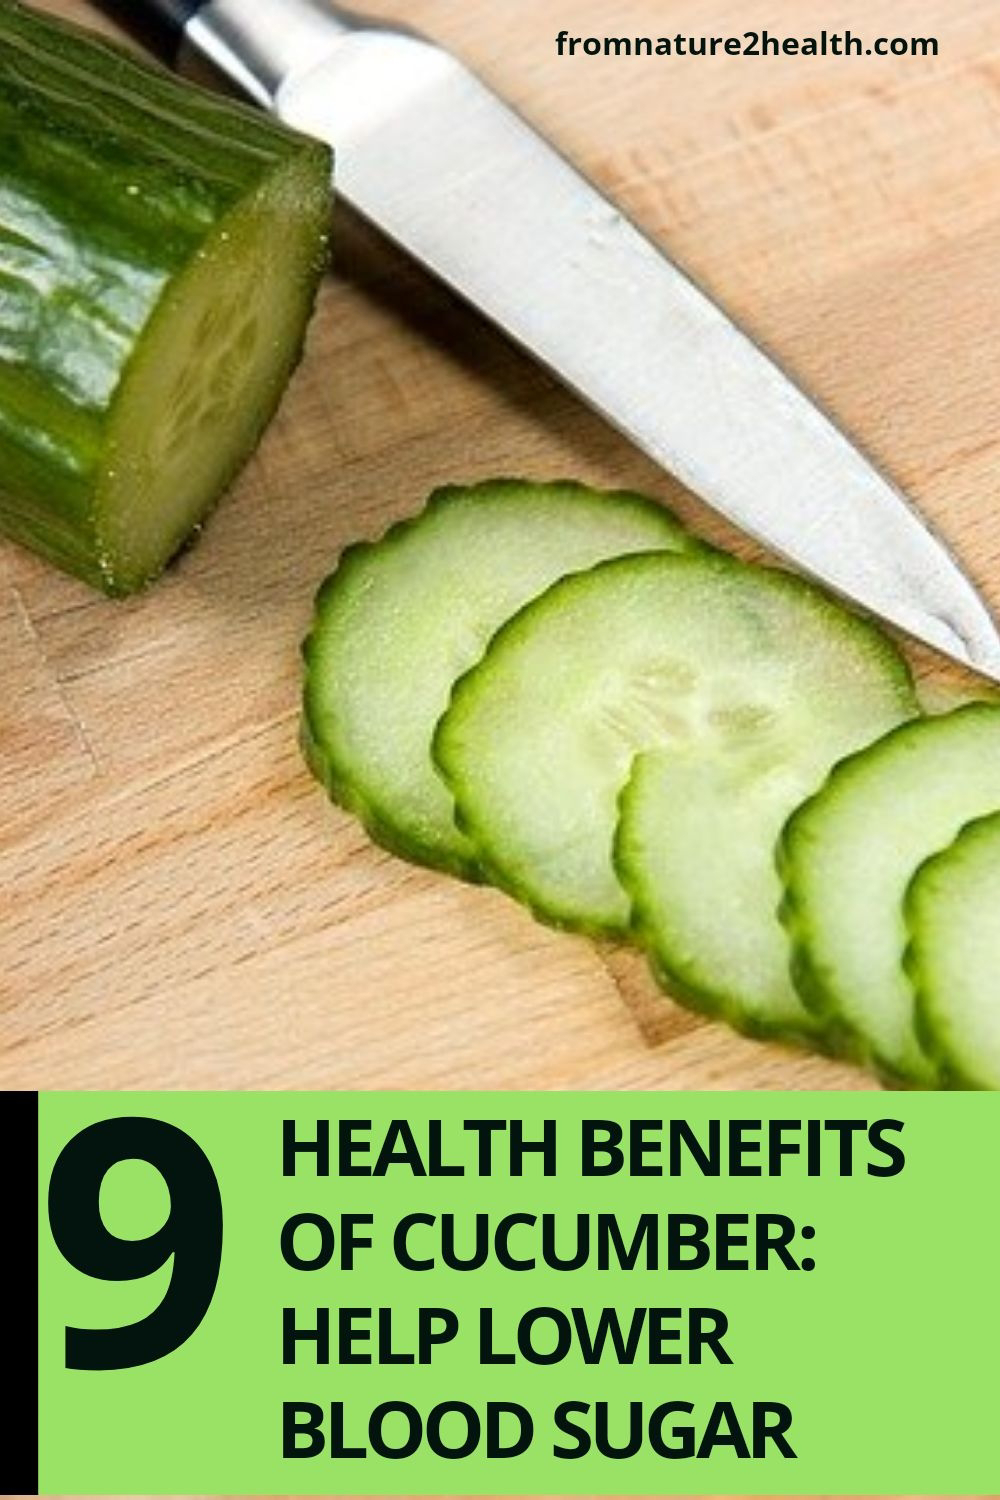 9 Health Benefits of Cucumber: Help Lower Blood Sugar